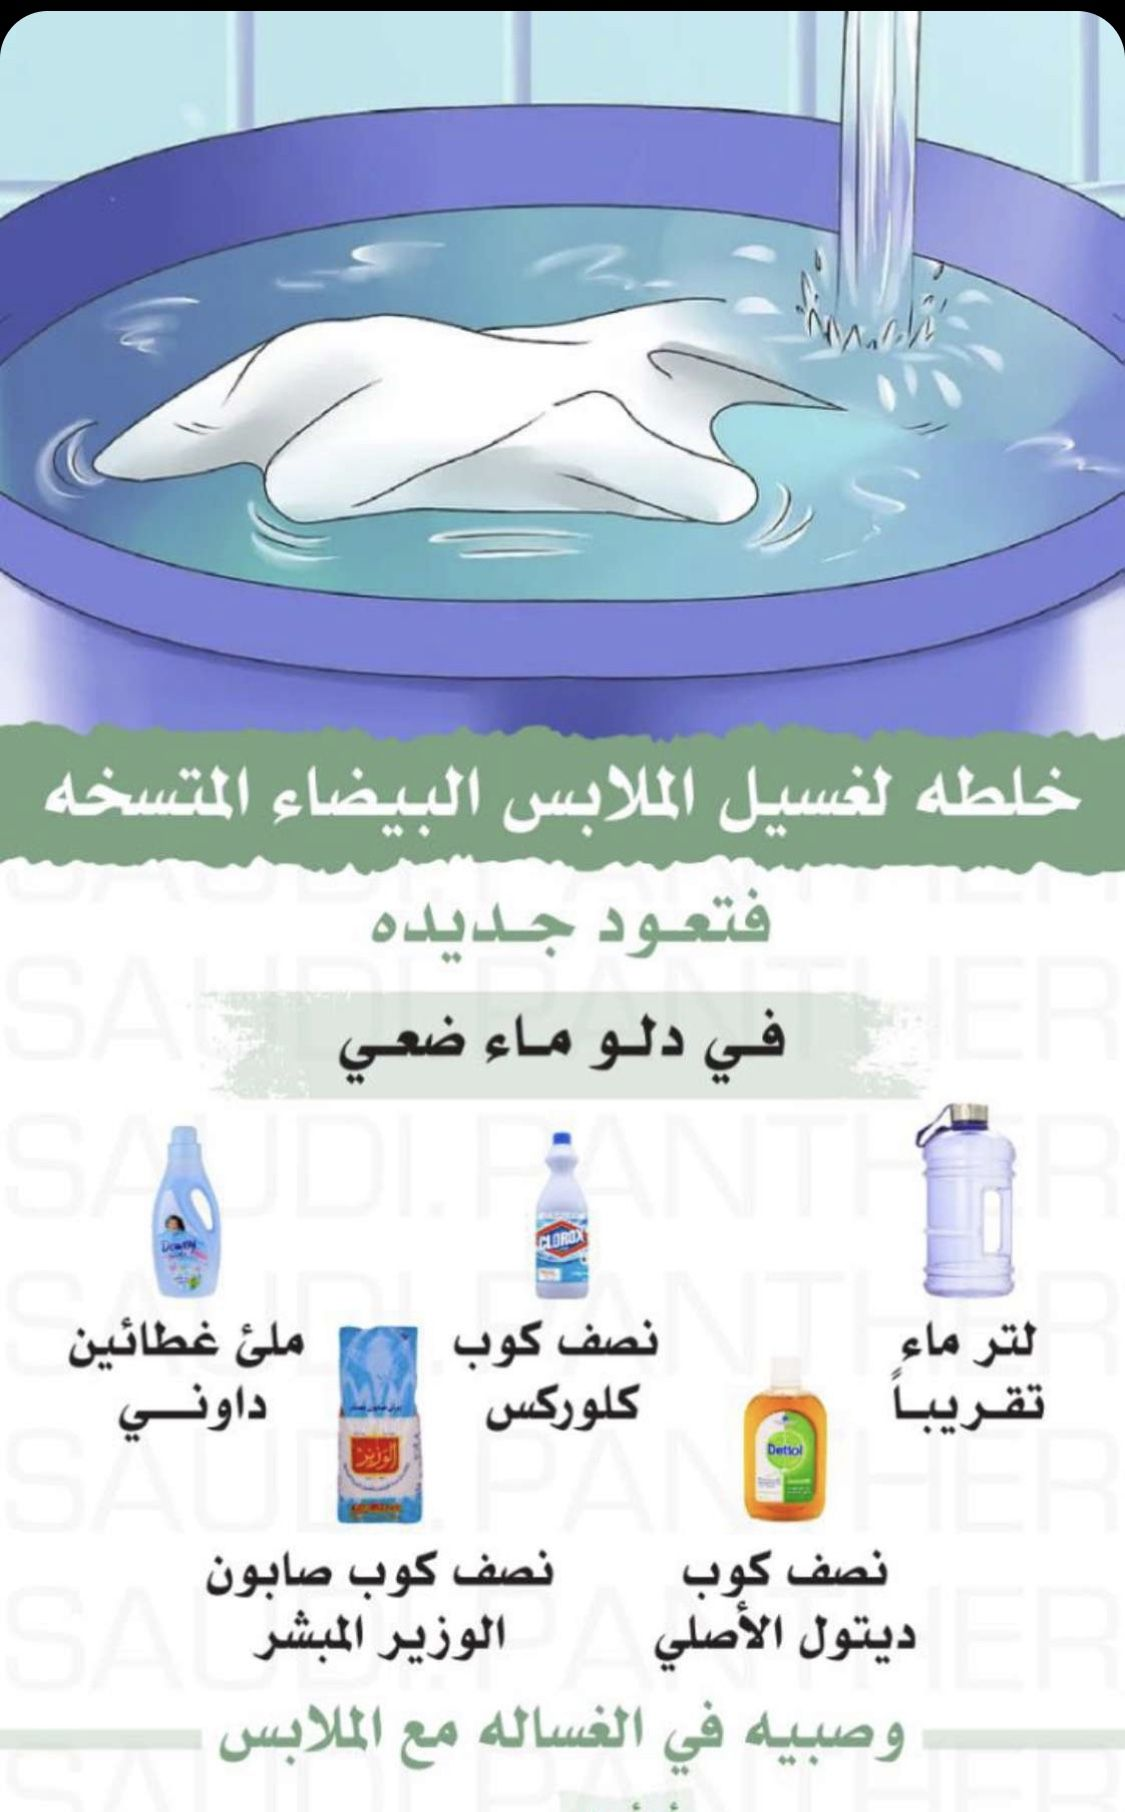 Pin By Sahar On Lili In 2020 Diy Home Cleaning House Cleaning Checklist Cleaning Clothes